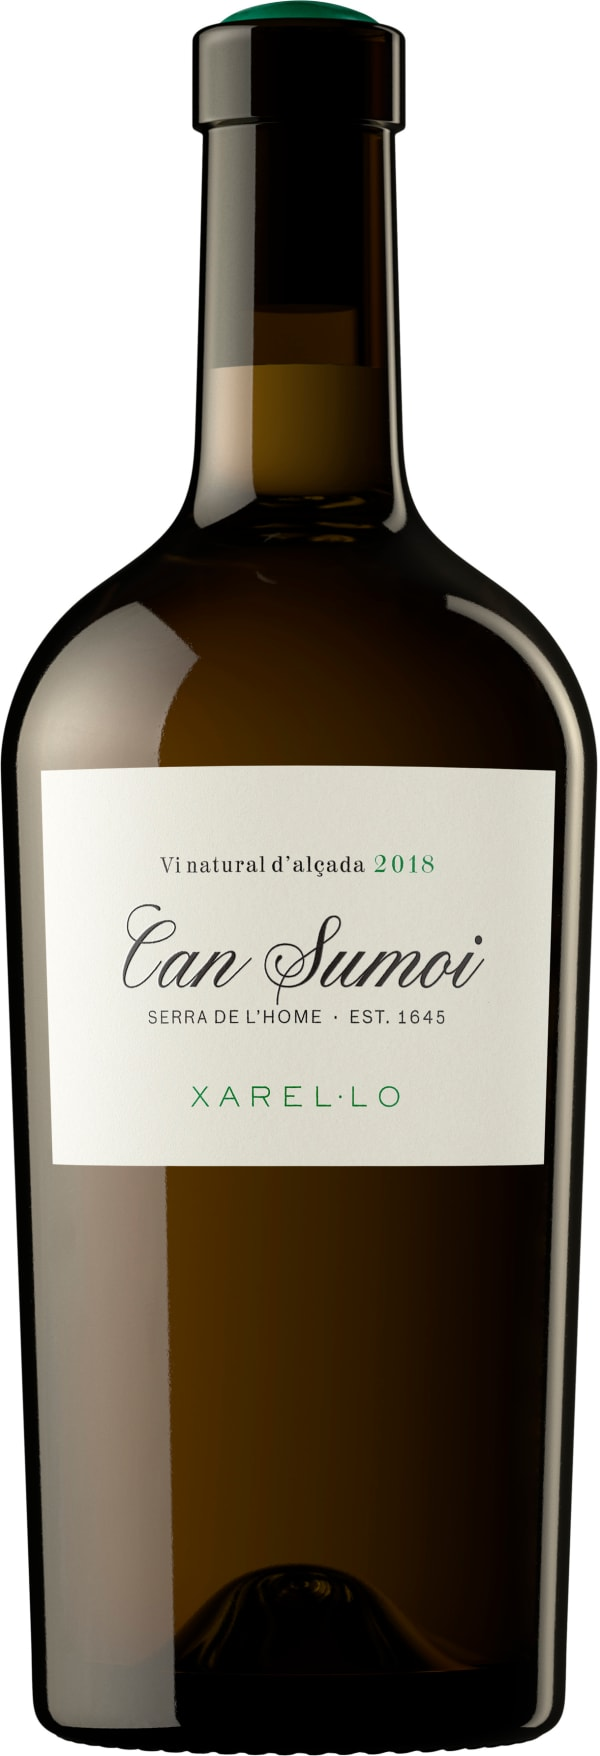 Can Sumoi Xarel-lo 2018